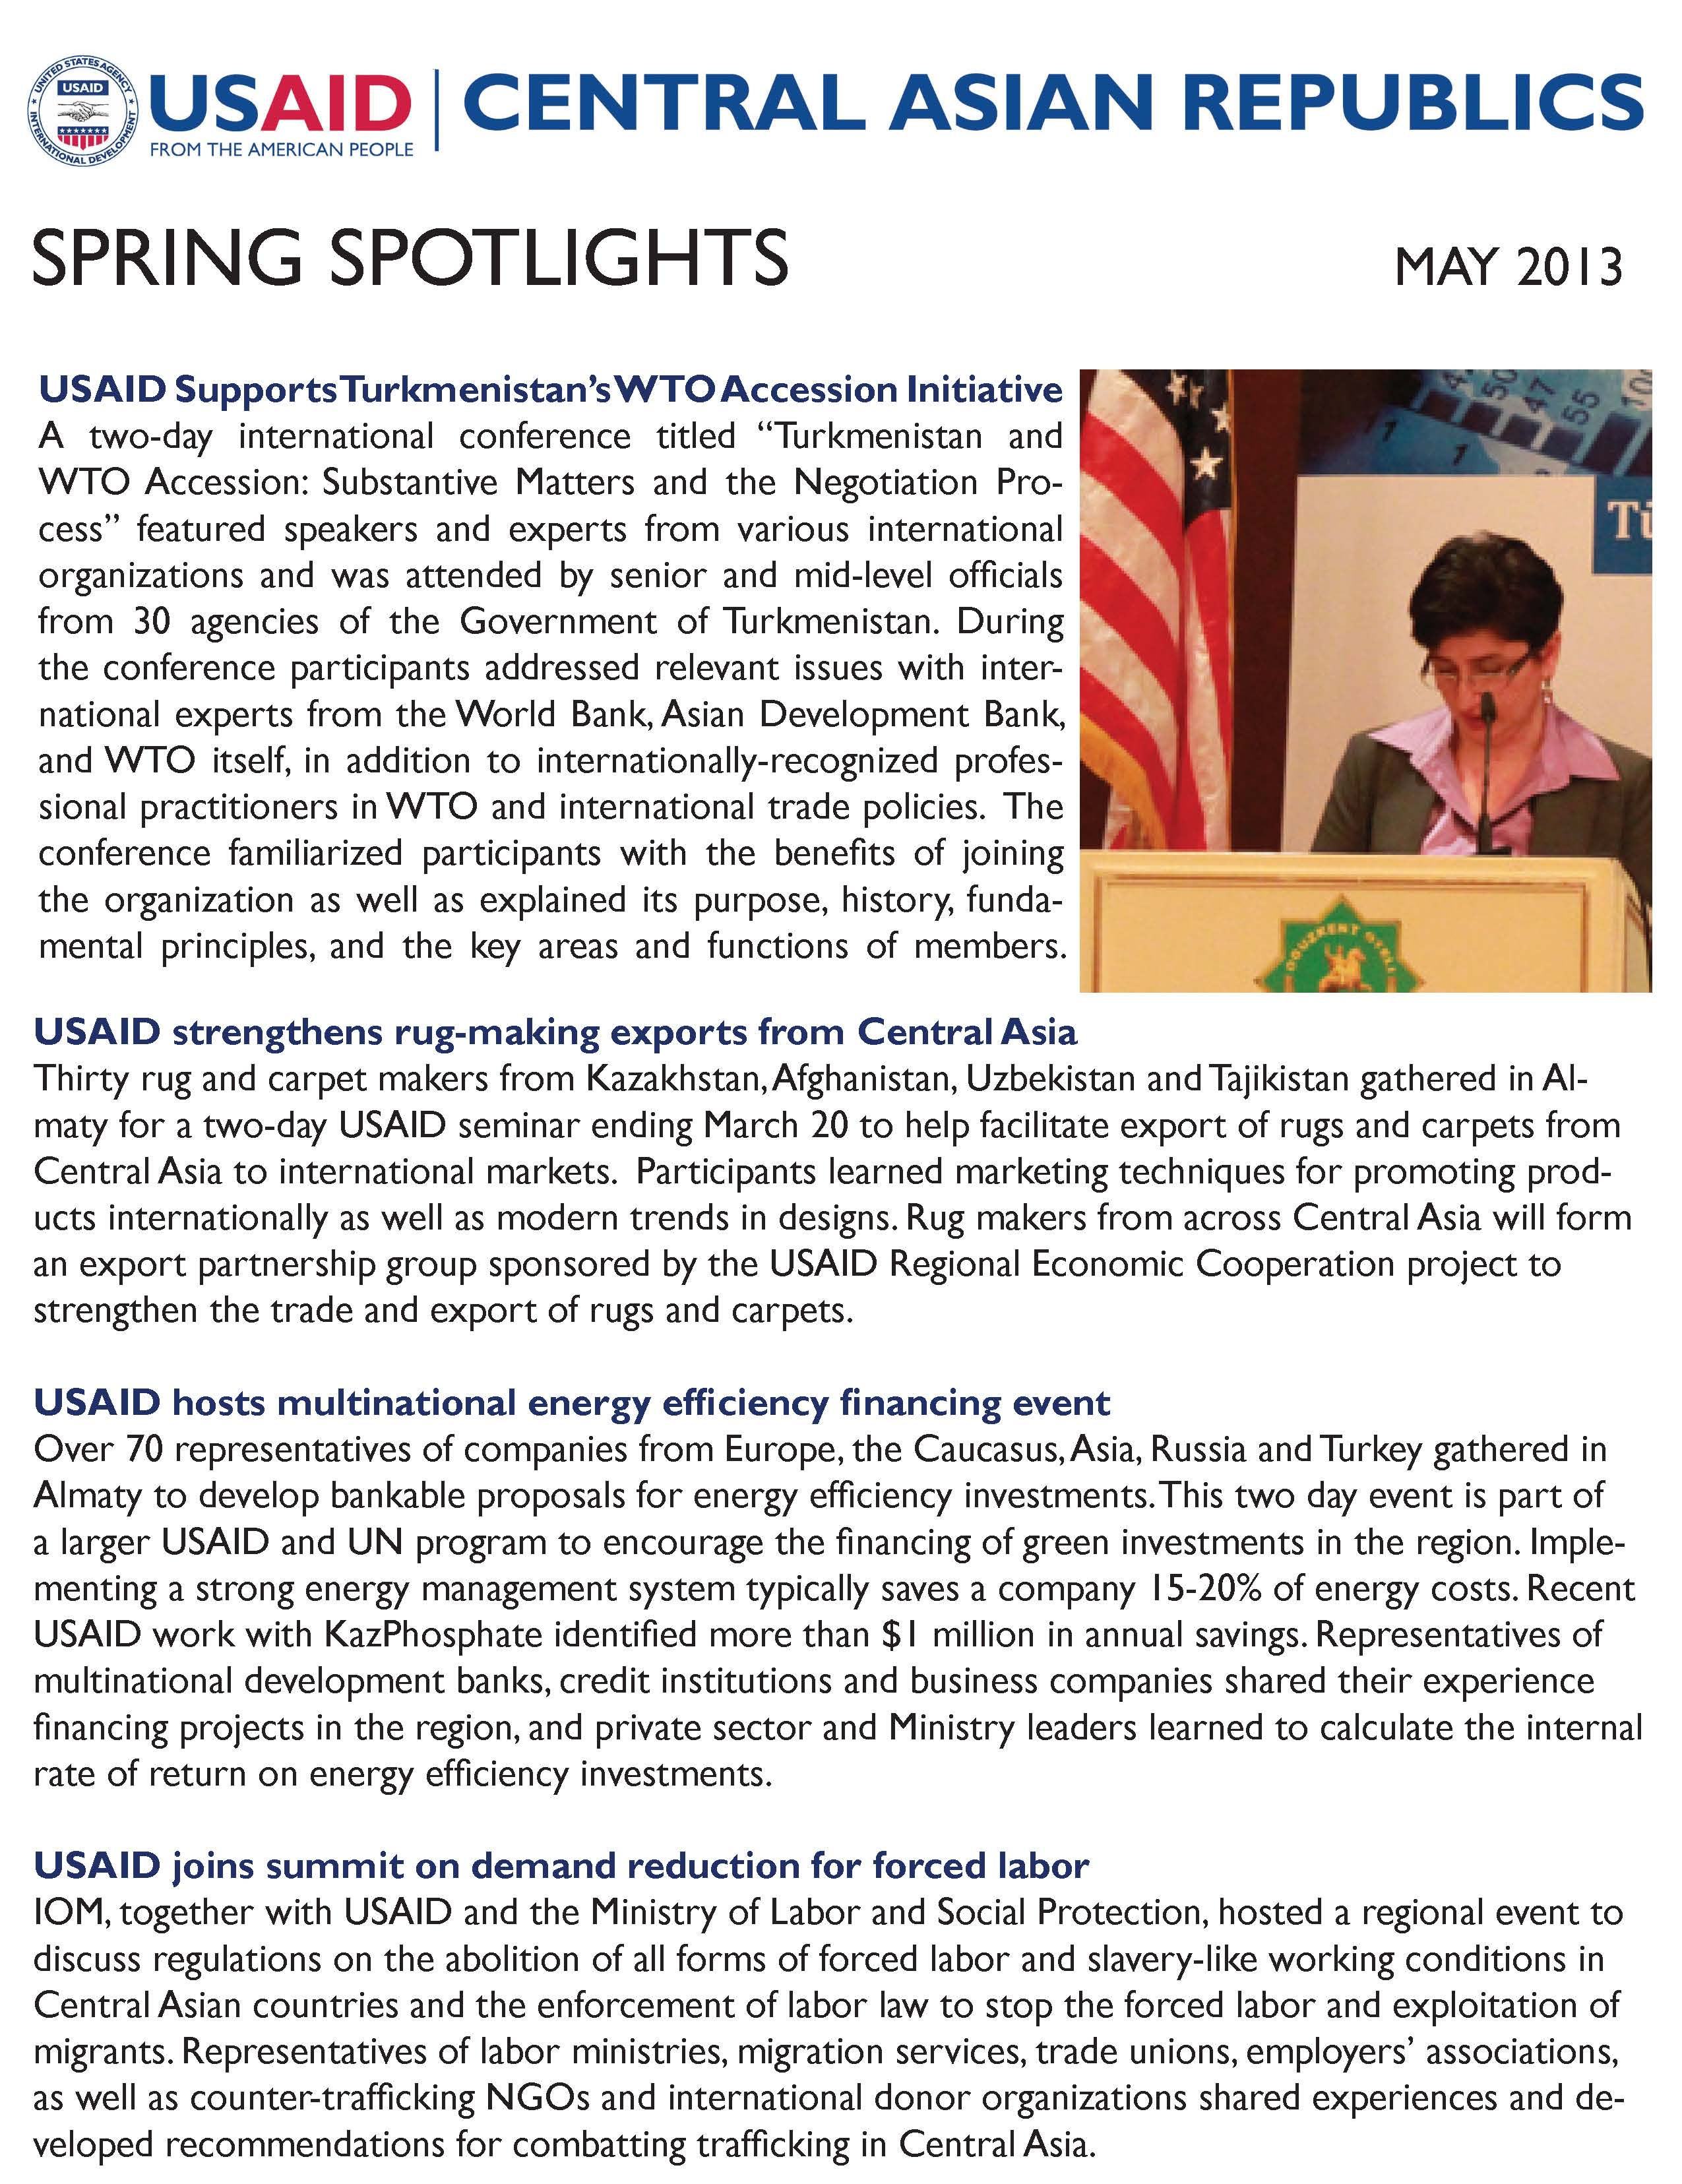 USAID/CAR Spring Newsletter 2013